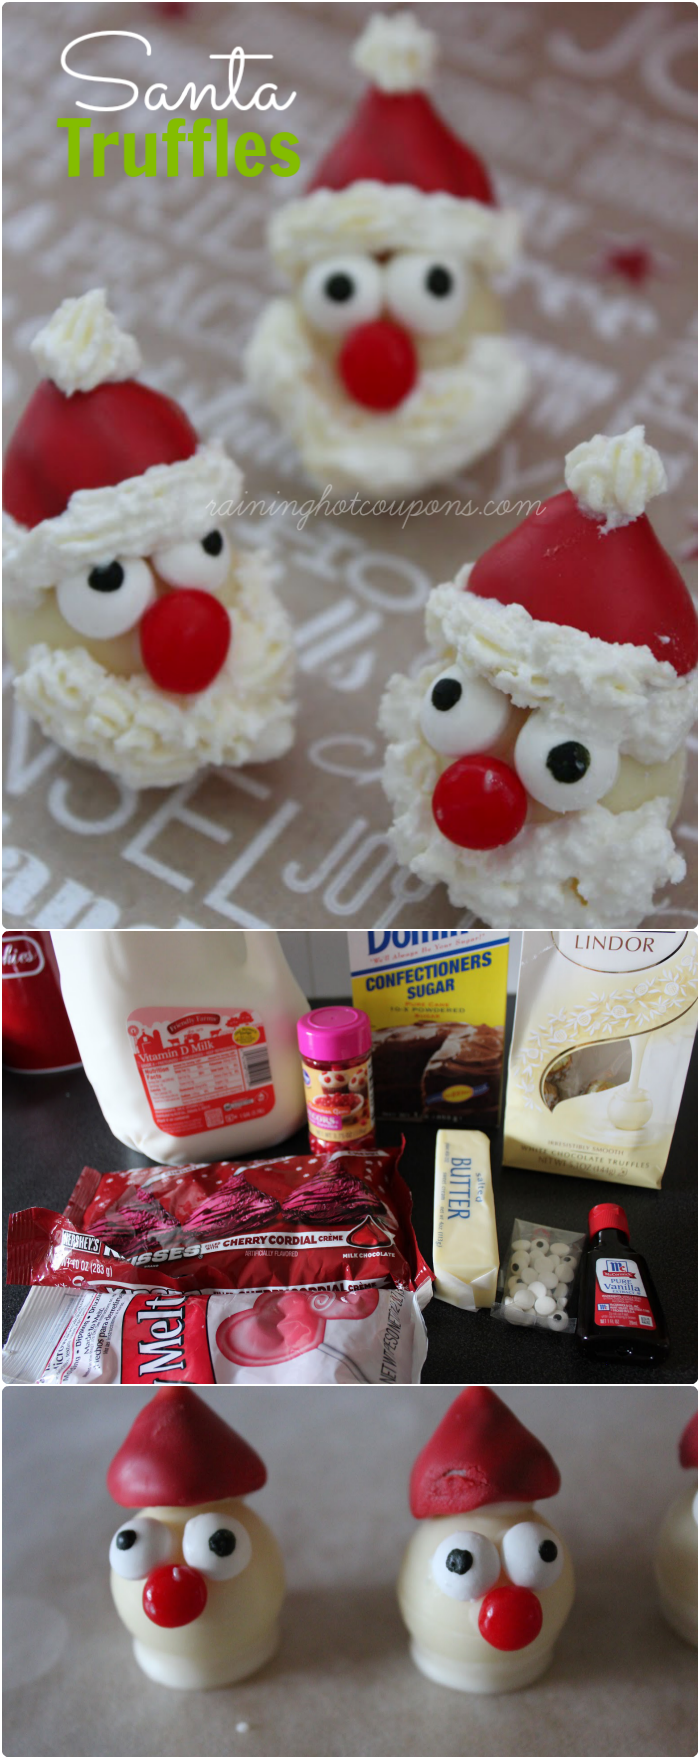 santa truffles collage Santa Truffles Recipe